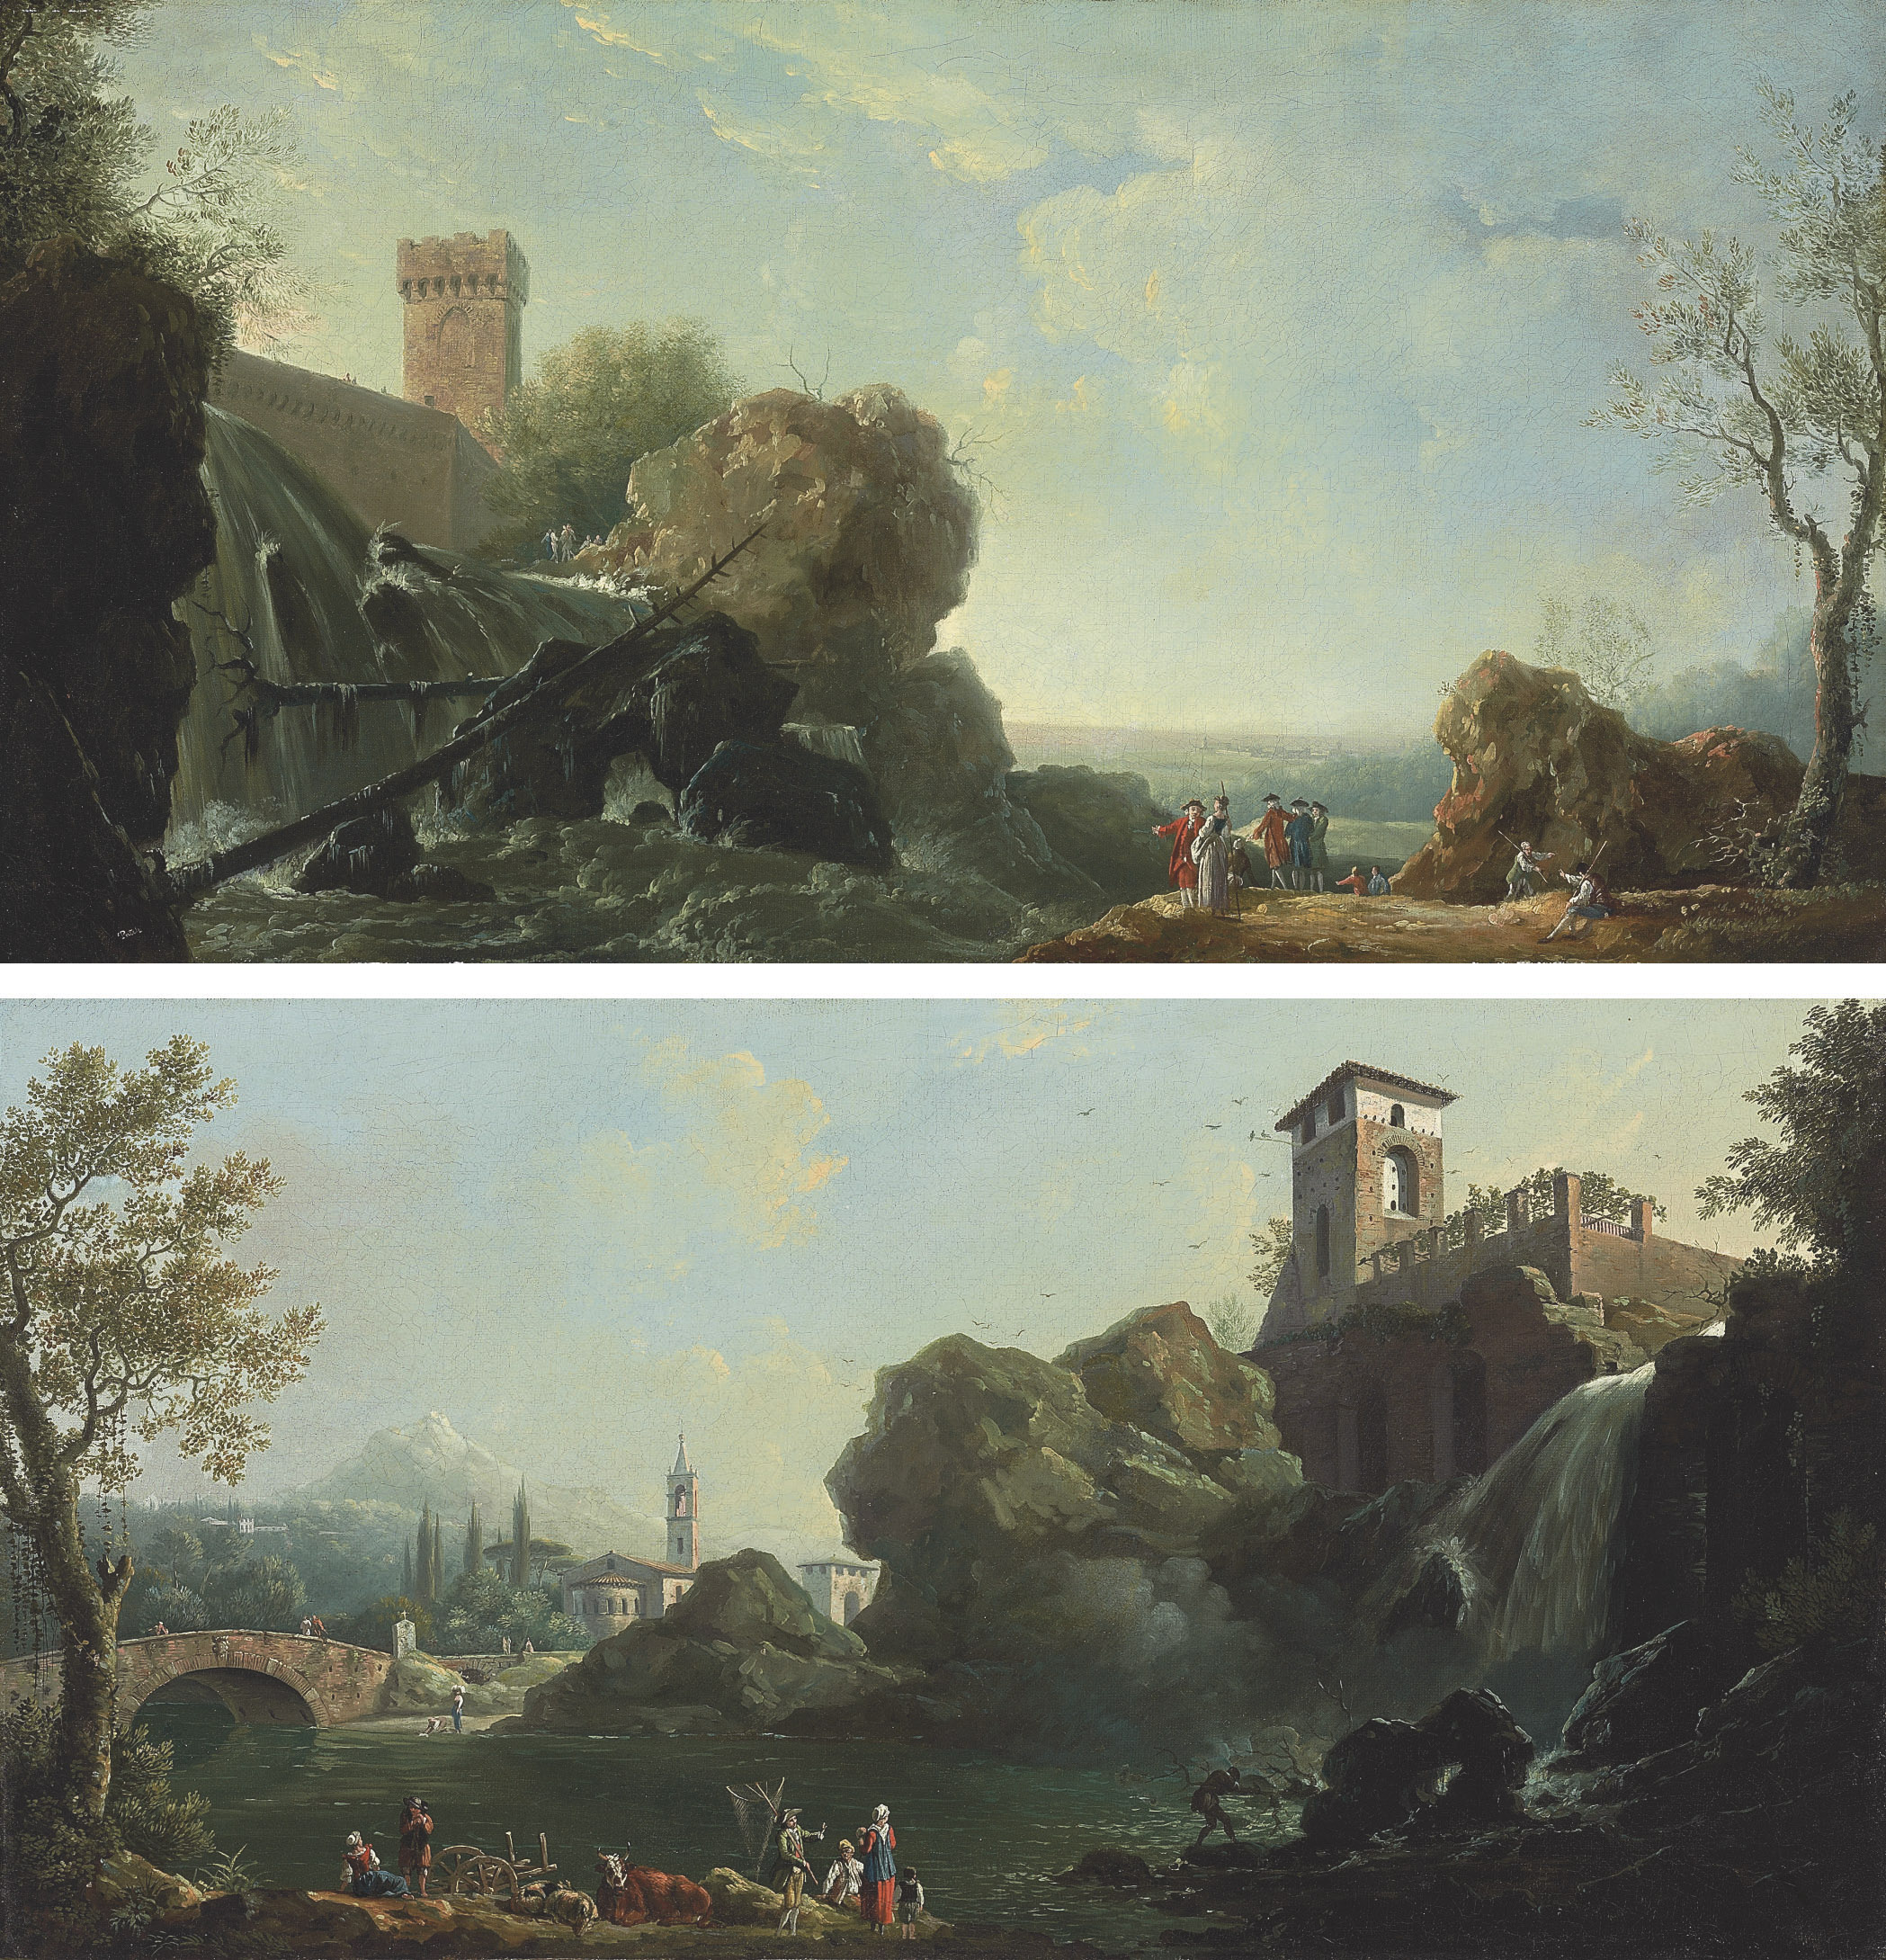 An Italianate landscape with elegant figures by a waterfall; and An Italianate river landscape with fishermen, a church and a bridge beyond